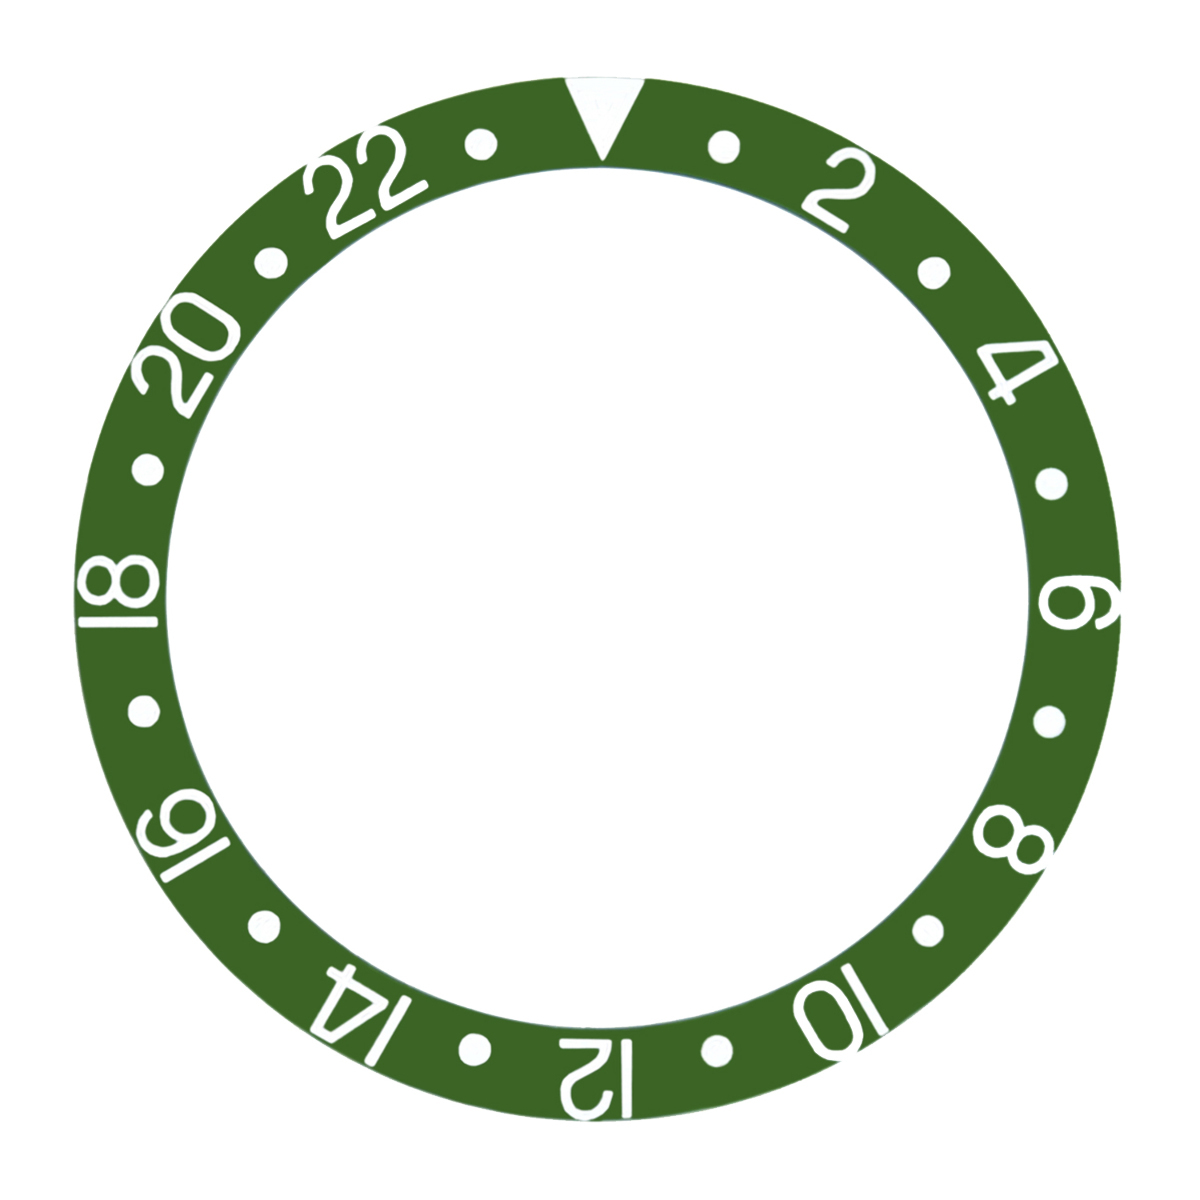 REPLACEMENT BEZEL INSERT GREEN FOR WATCH 37.70MM X 30.70MM